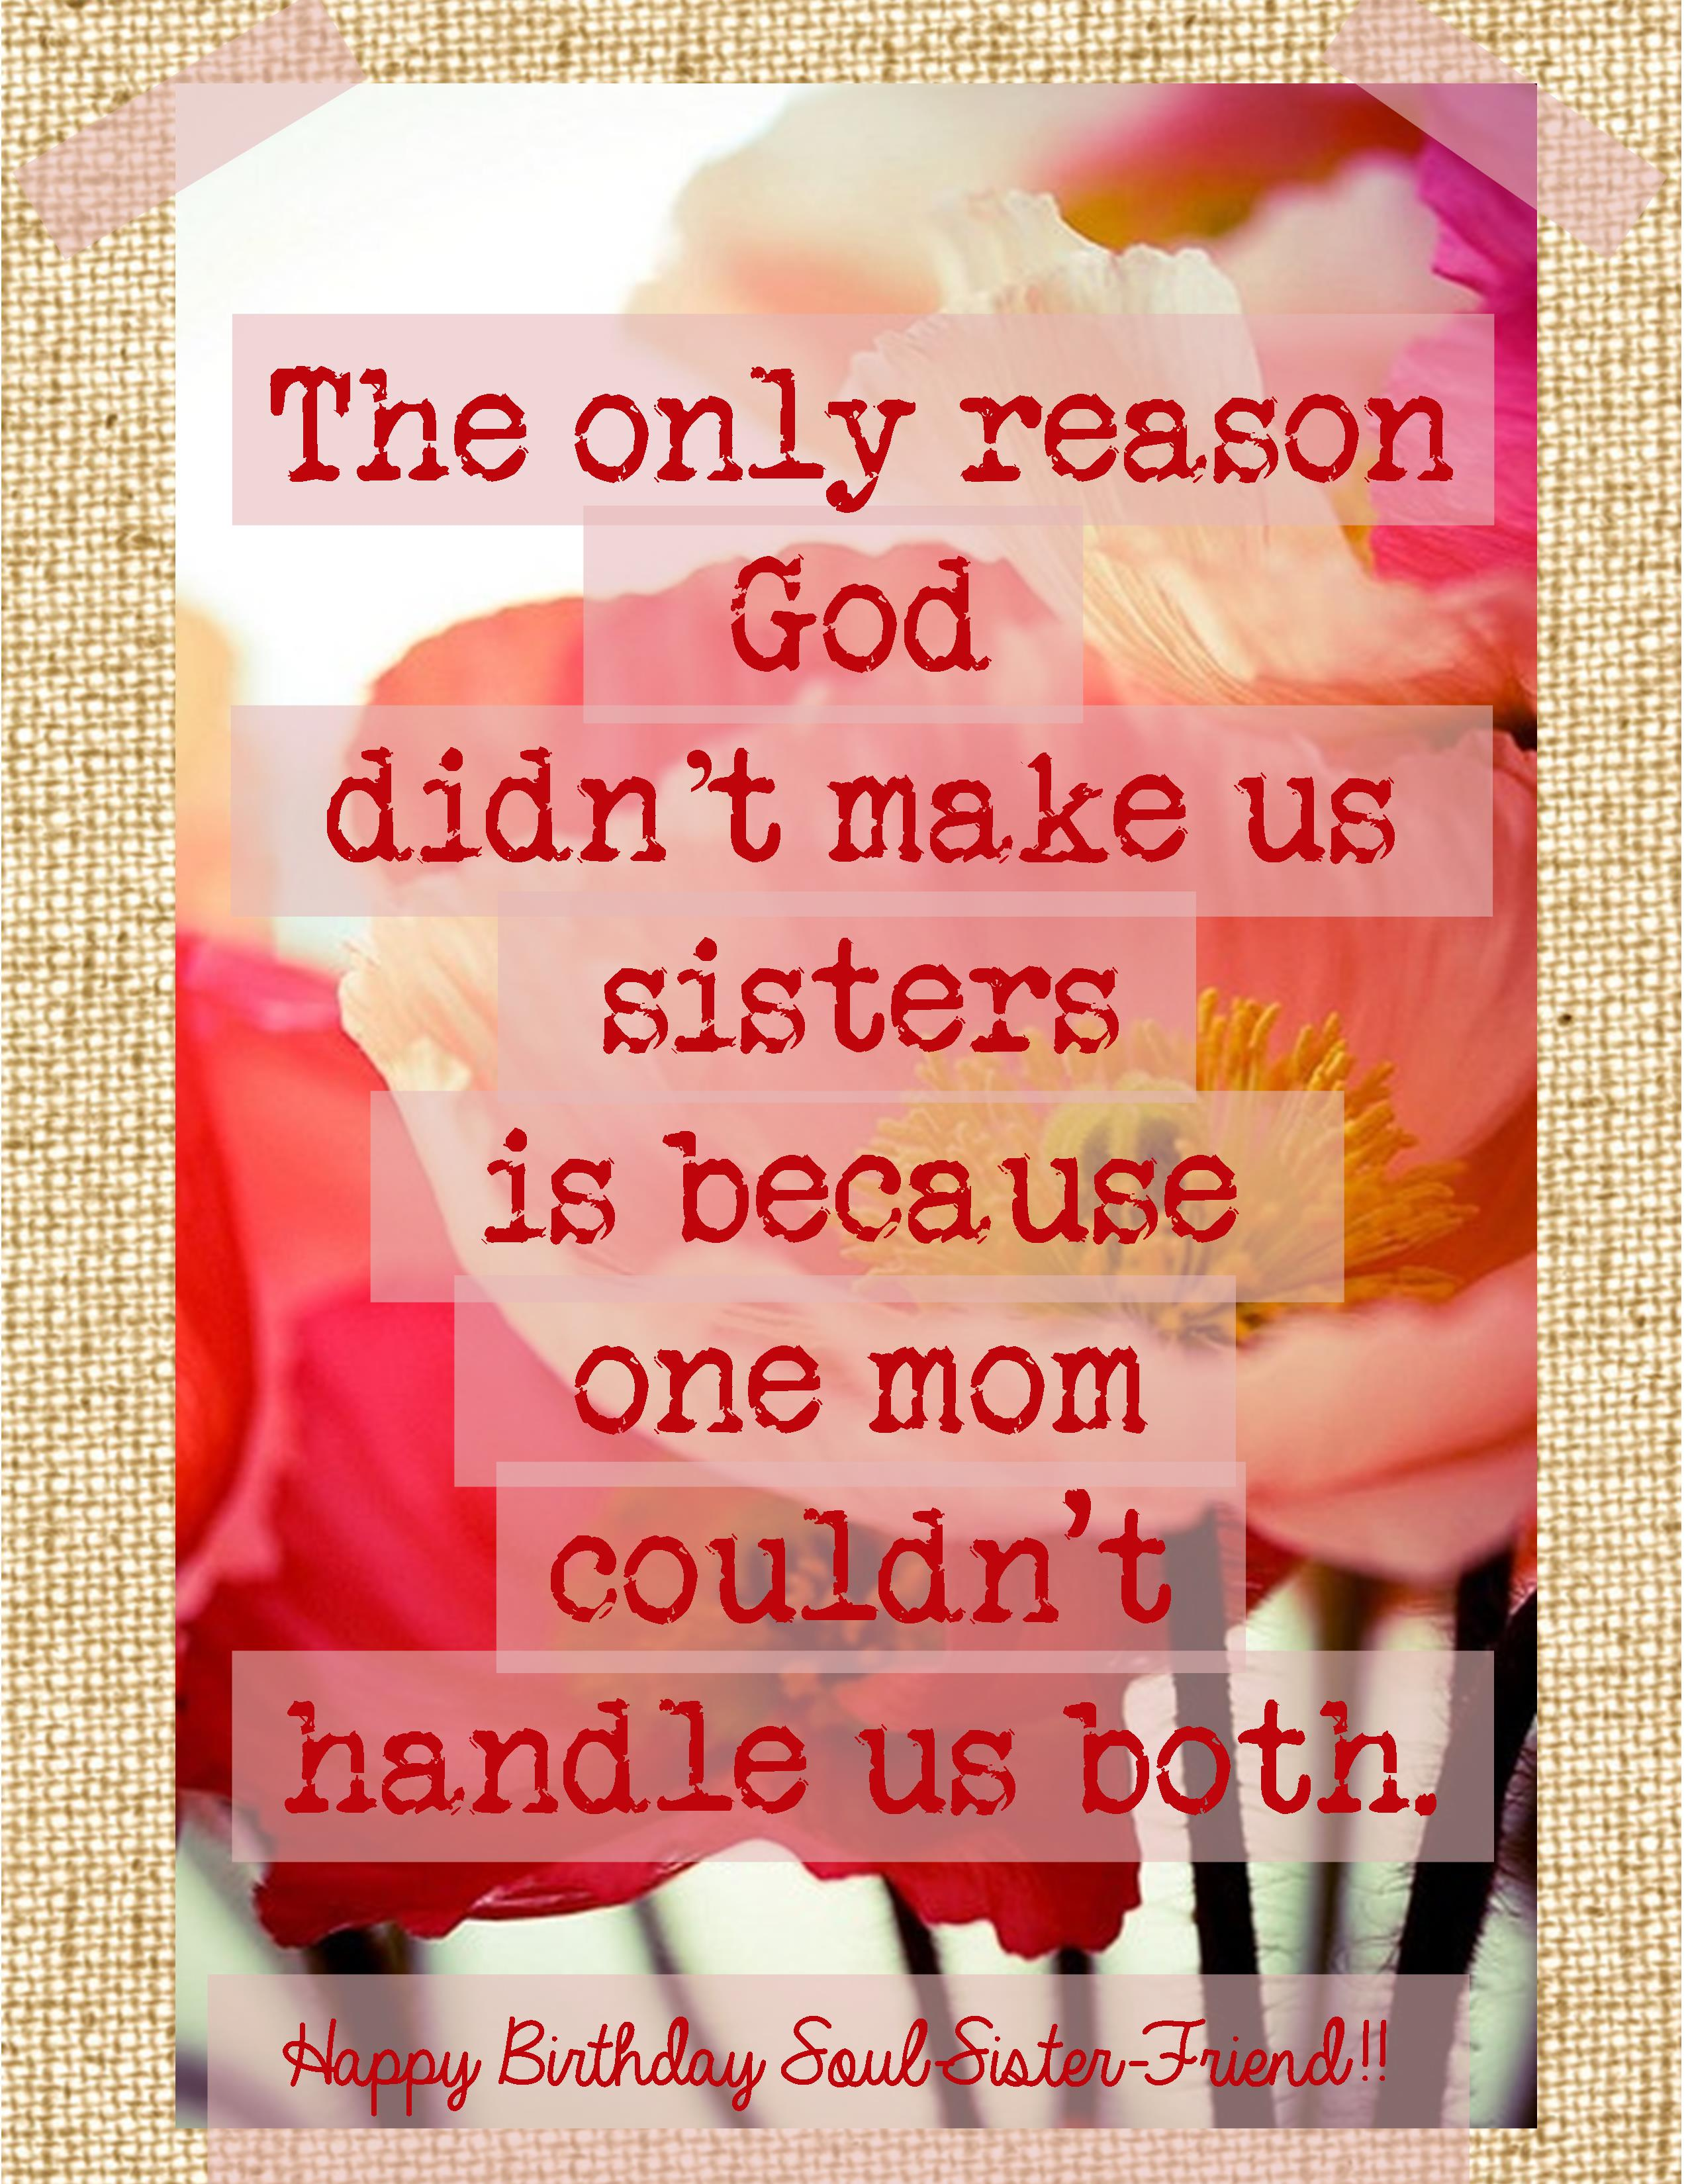 Sister Funny Quotes Birthday Quotes For Friend Like Sister Best Images About Sisters